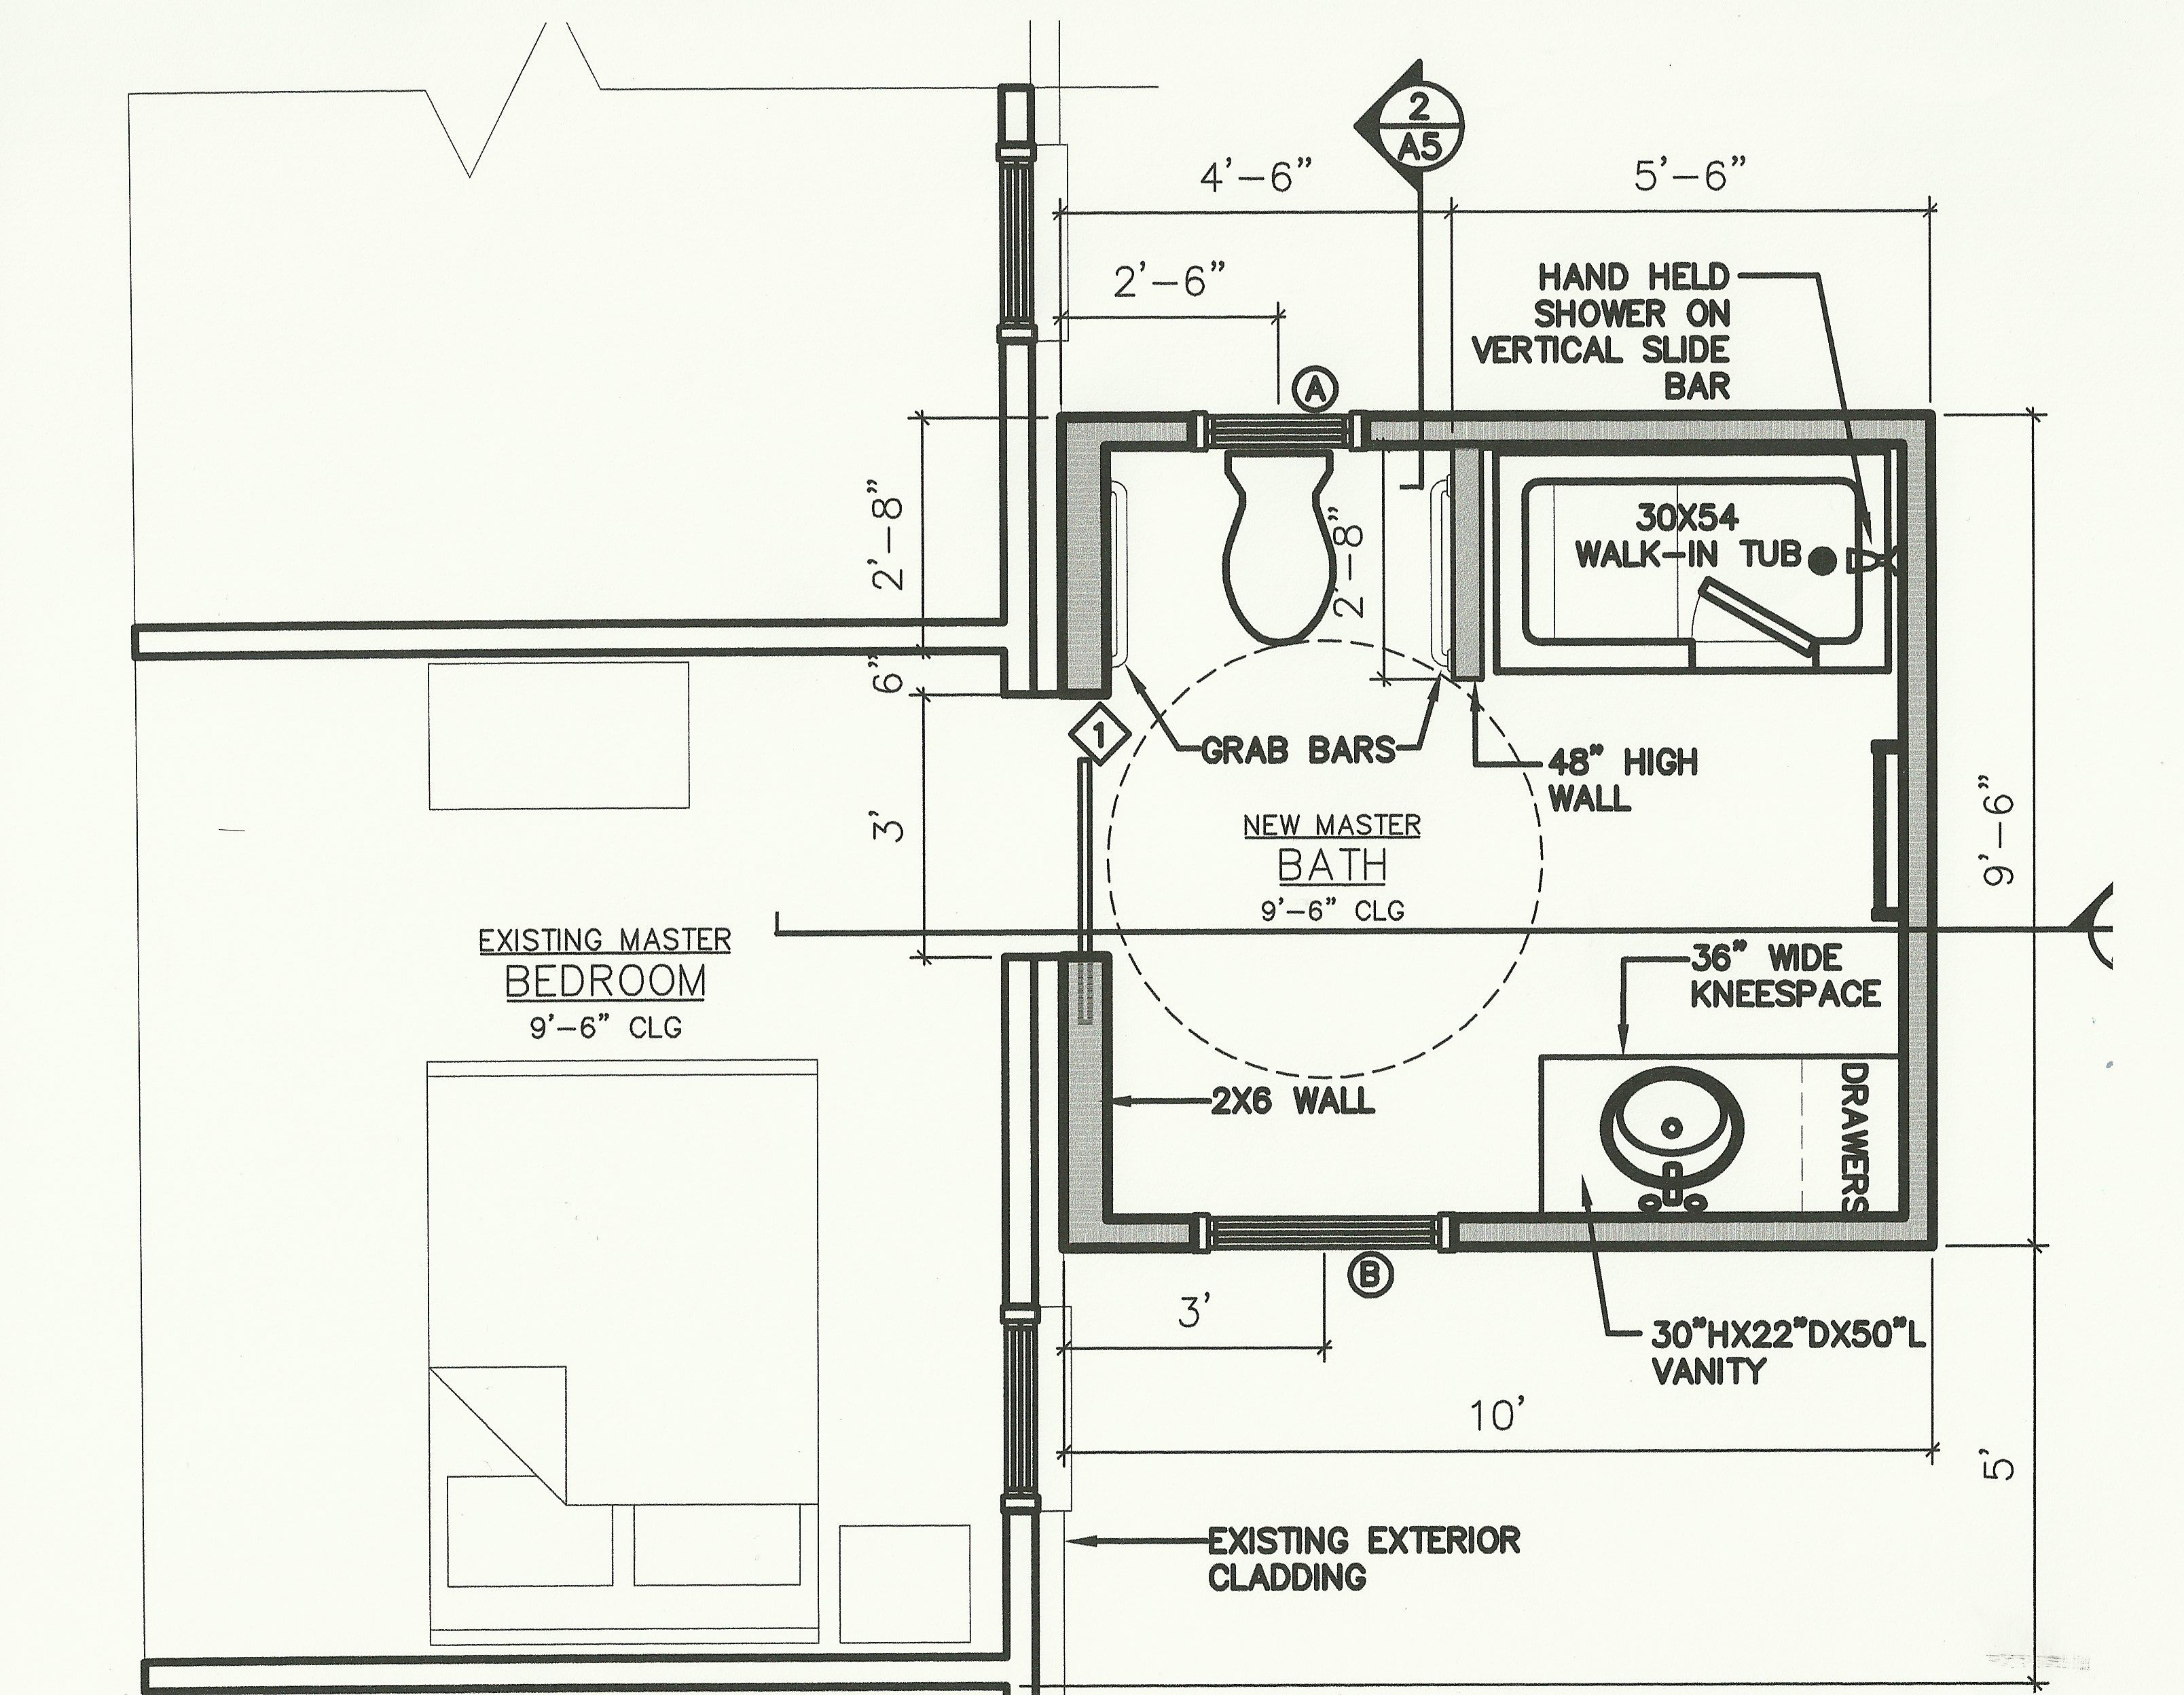 Commercial bathroom layouts - Small Bathroom Plans Shower Only Moncler Factory Outlets Residential Ada Floor Quotes House Superb Master Bedroom